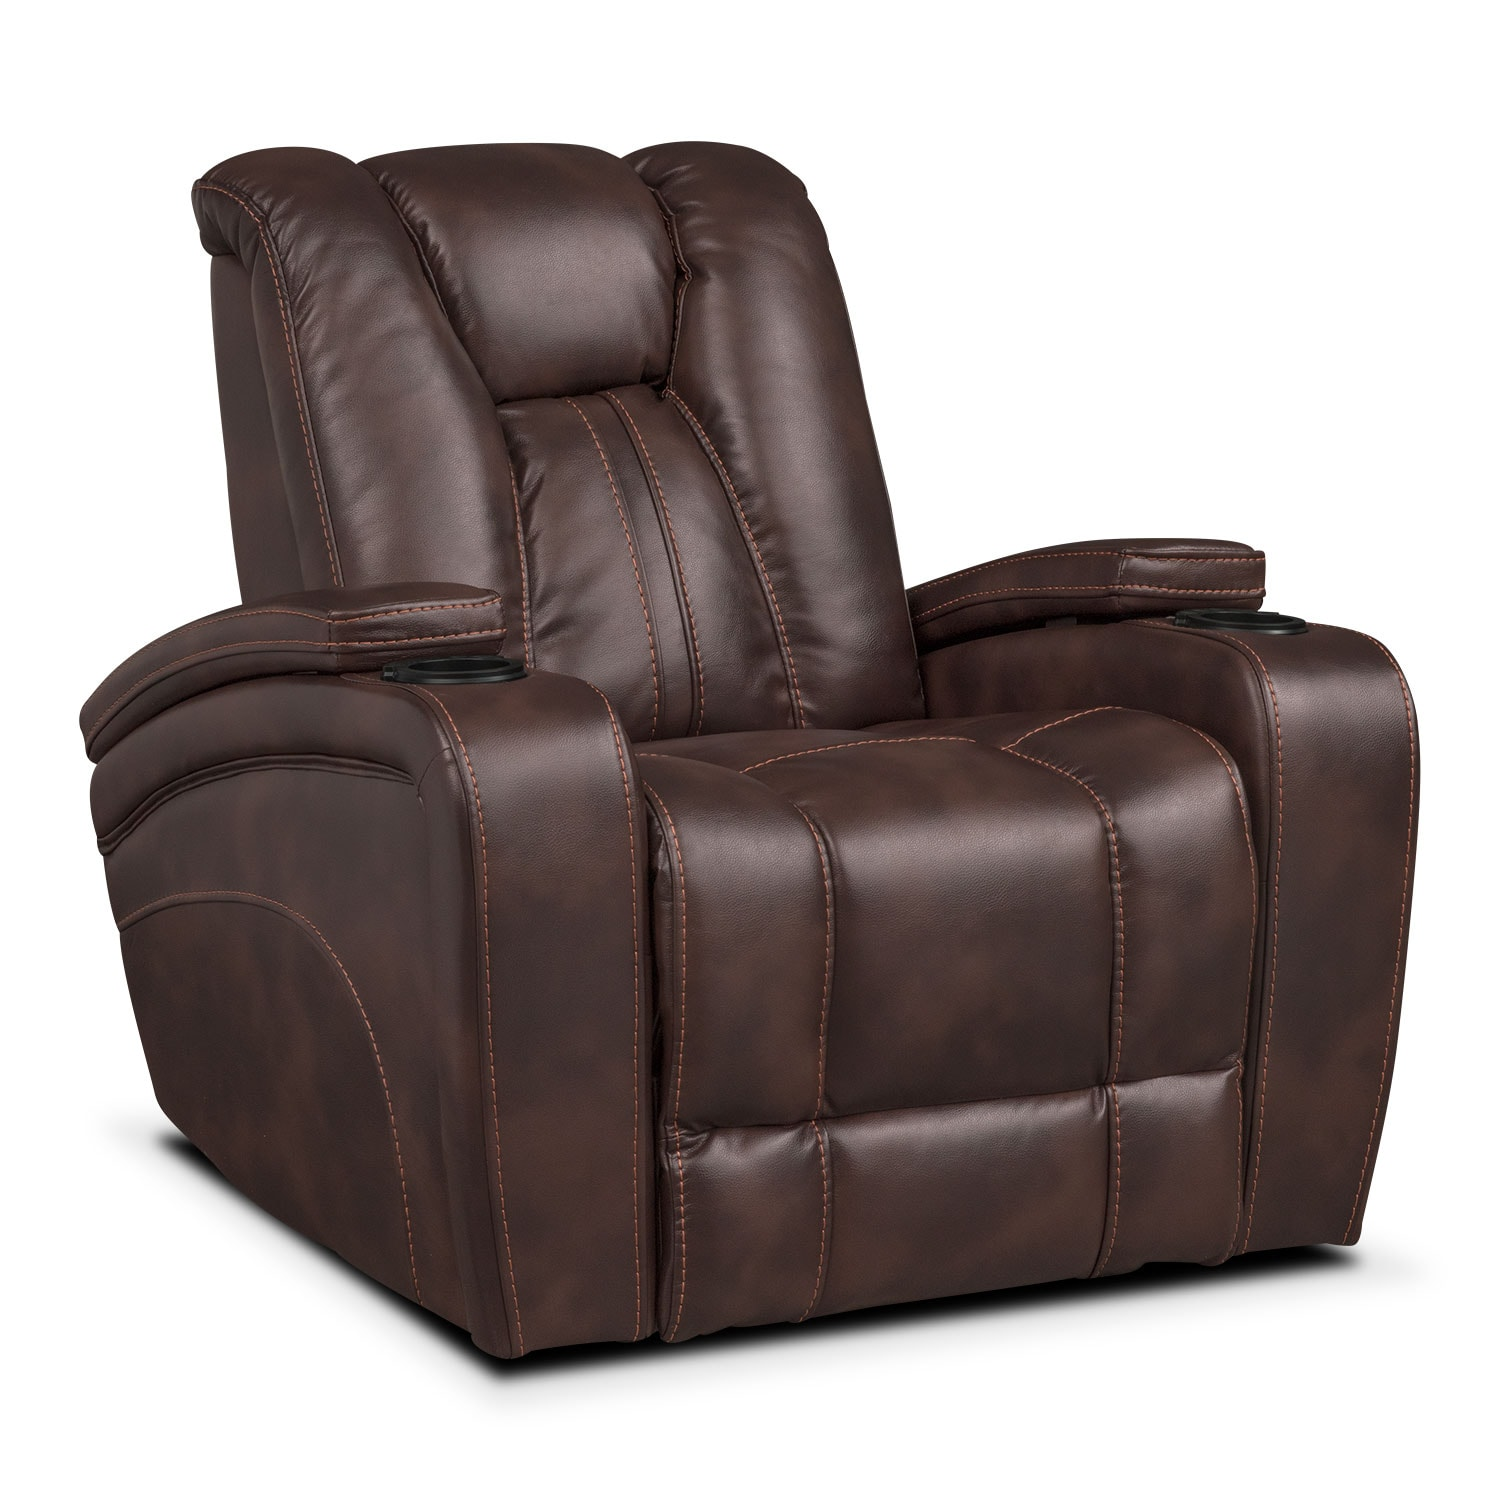 Pulsar Power Reclining Sofa Power Reclining Loveseat And Power Recliner Set Brown American